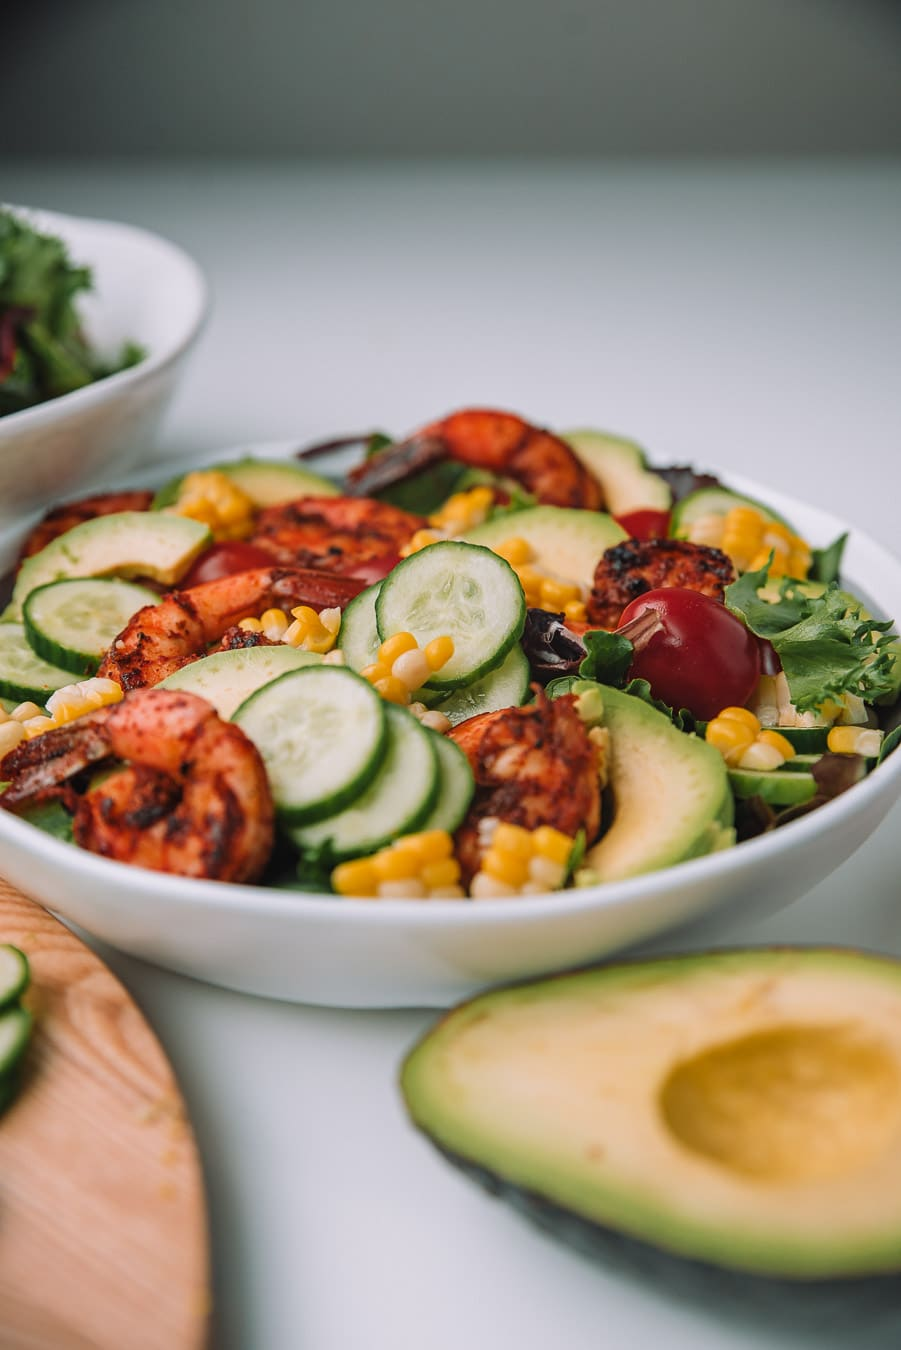 Bowl filled with Blackened Shrimp and Avocado Salad